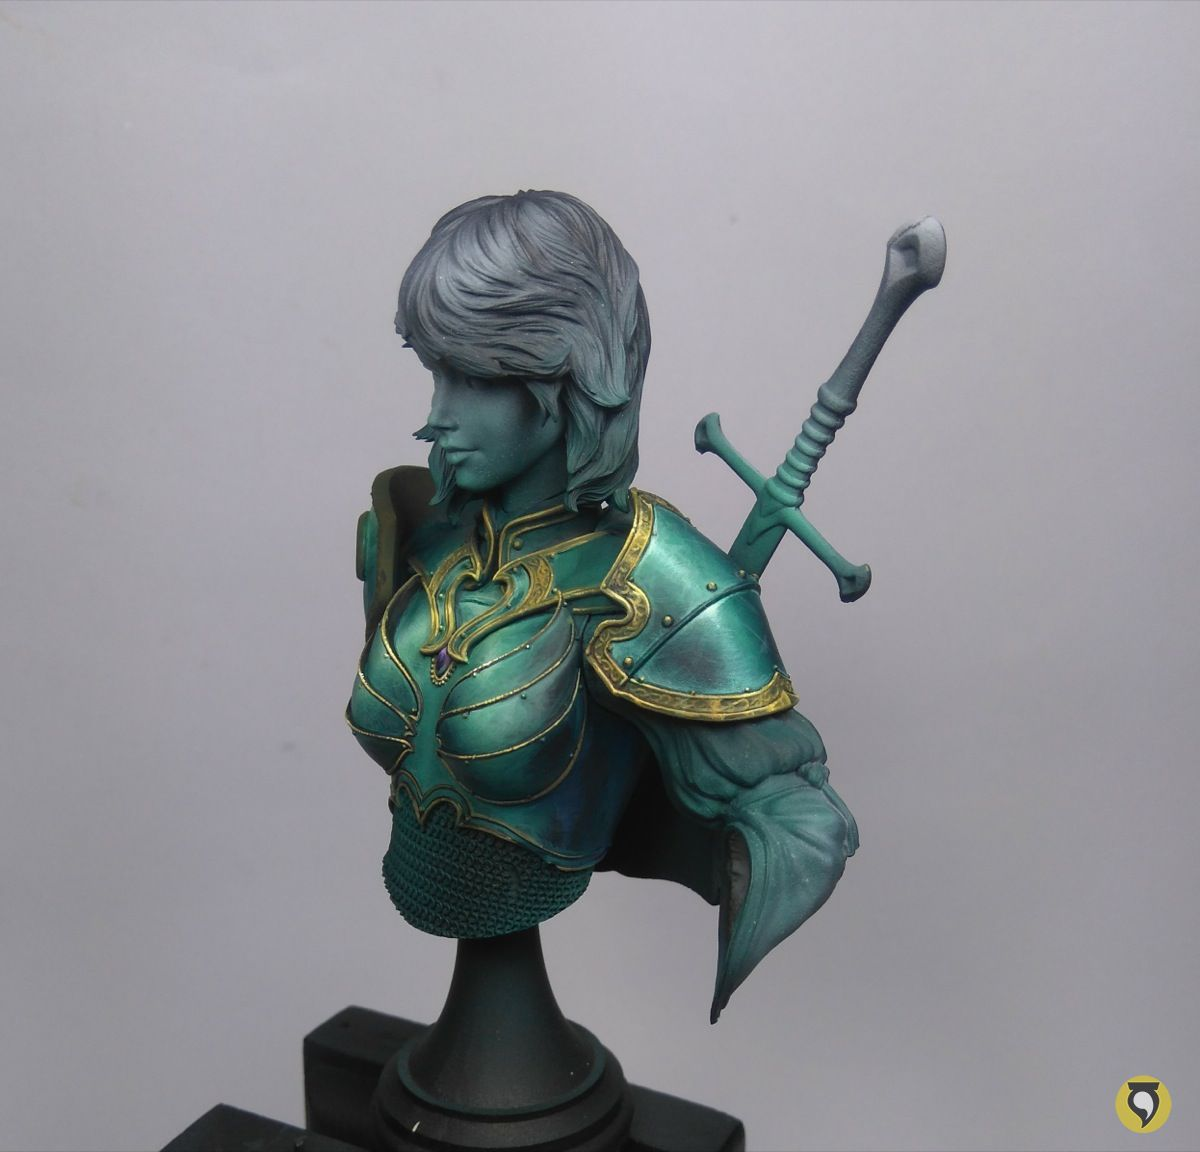 excelsy-bust-marc-masclans-article-tutorial-draconia-04